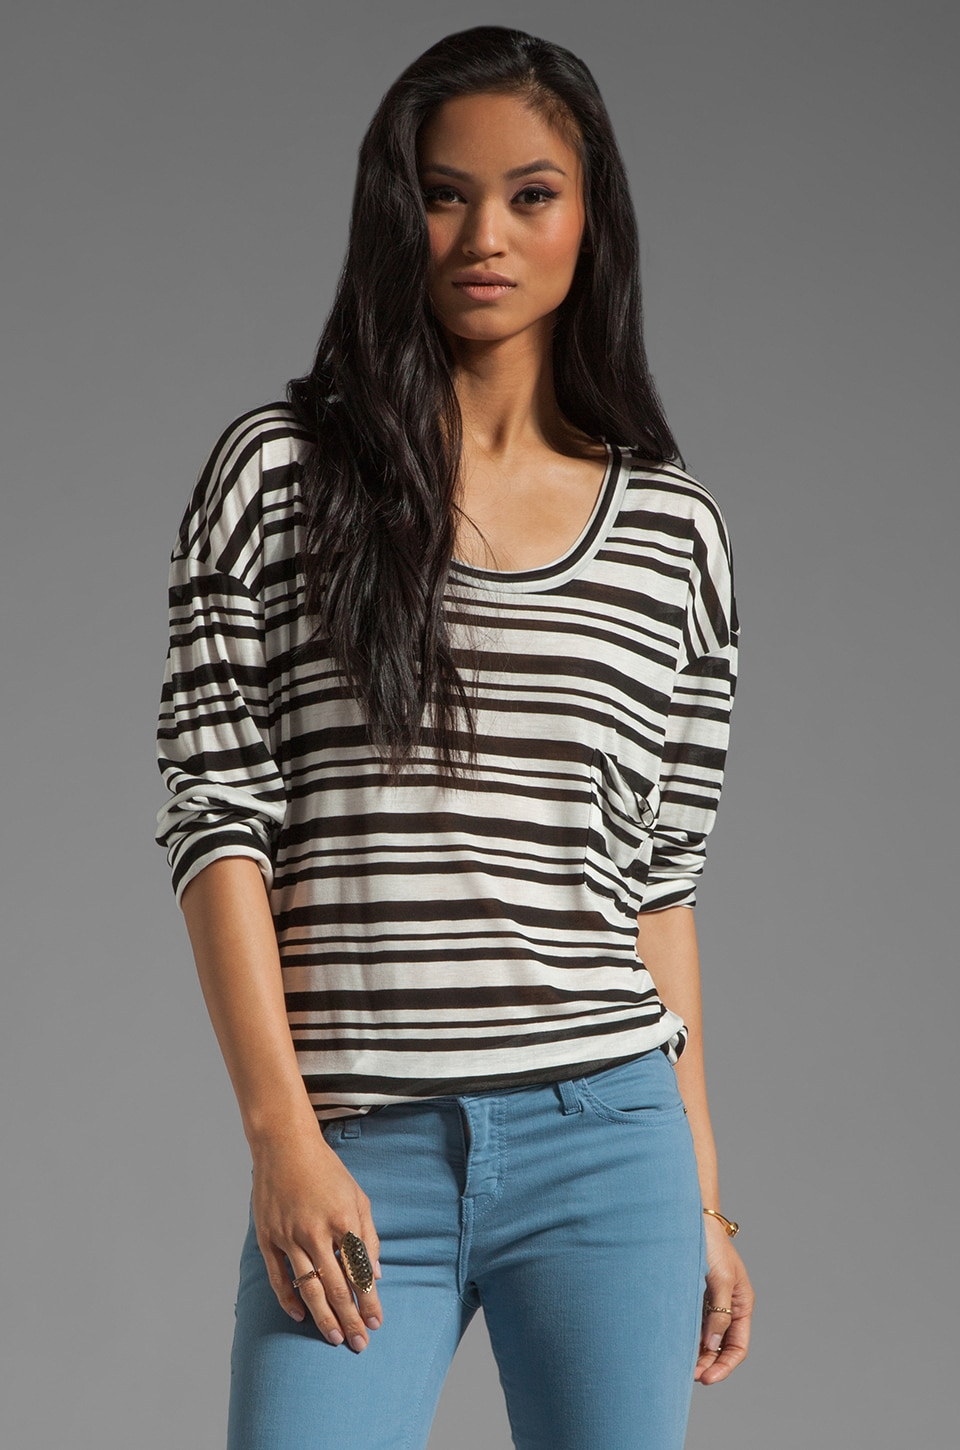 Blue Life Stripe Long Sleeve Best Bum Top in Black/White